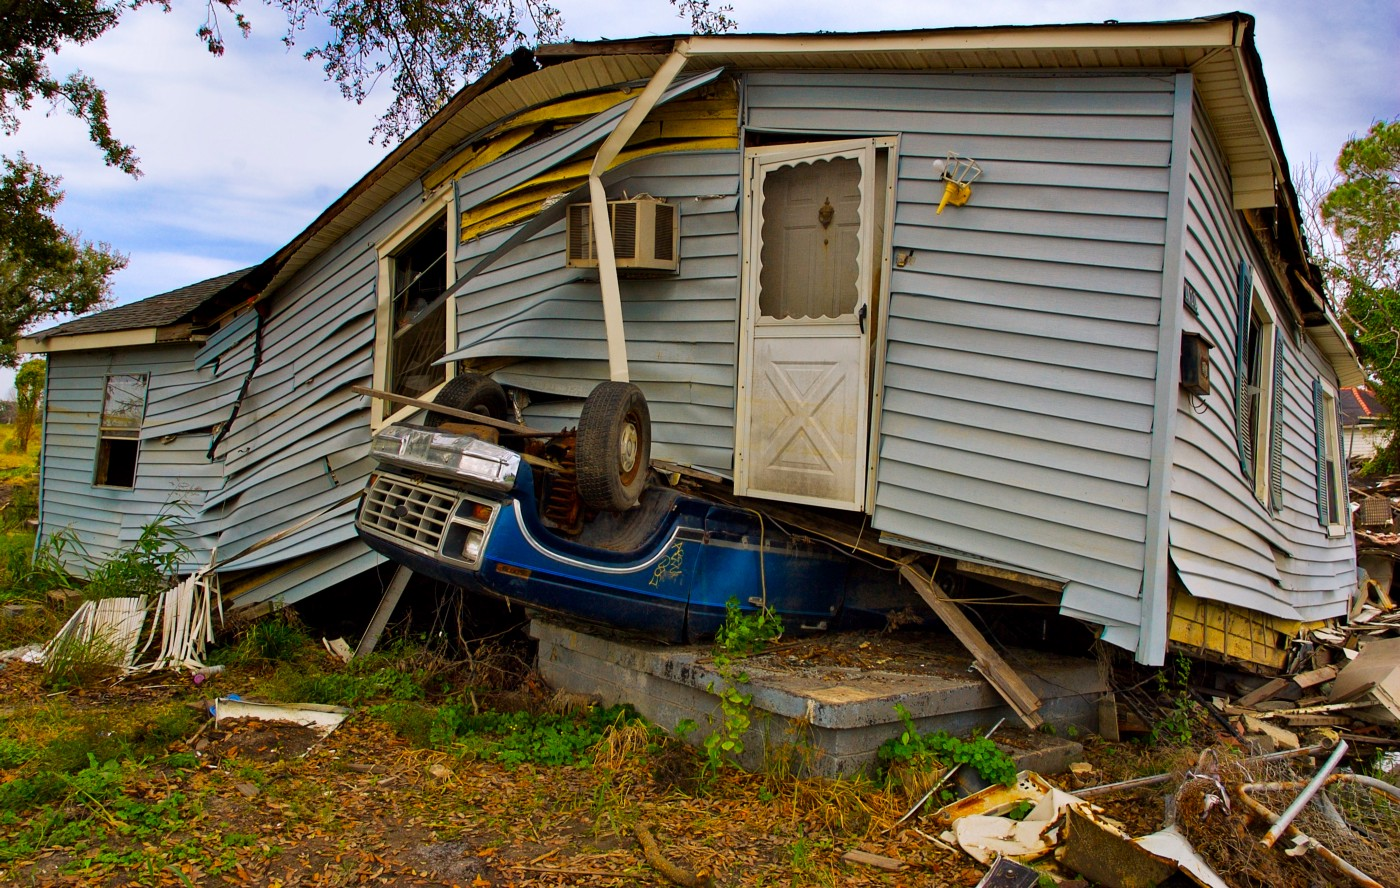 A light blue storm-ravaged house that has been shaken from its foundation sits on top of a royal blue upside-down vehicle.